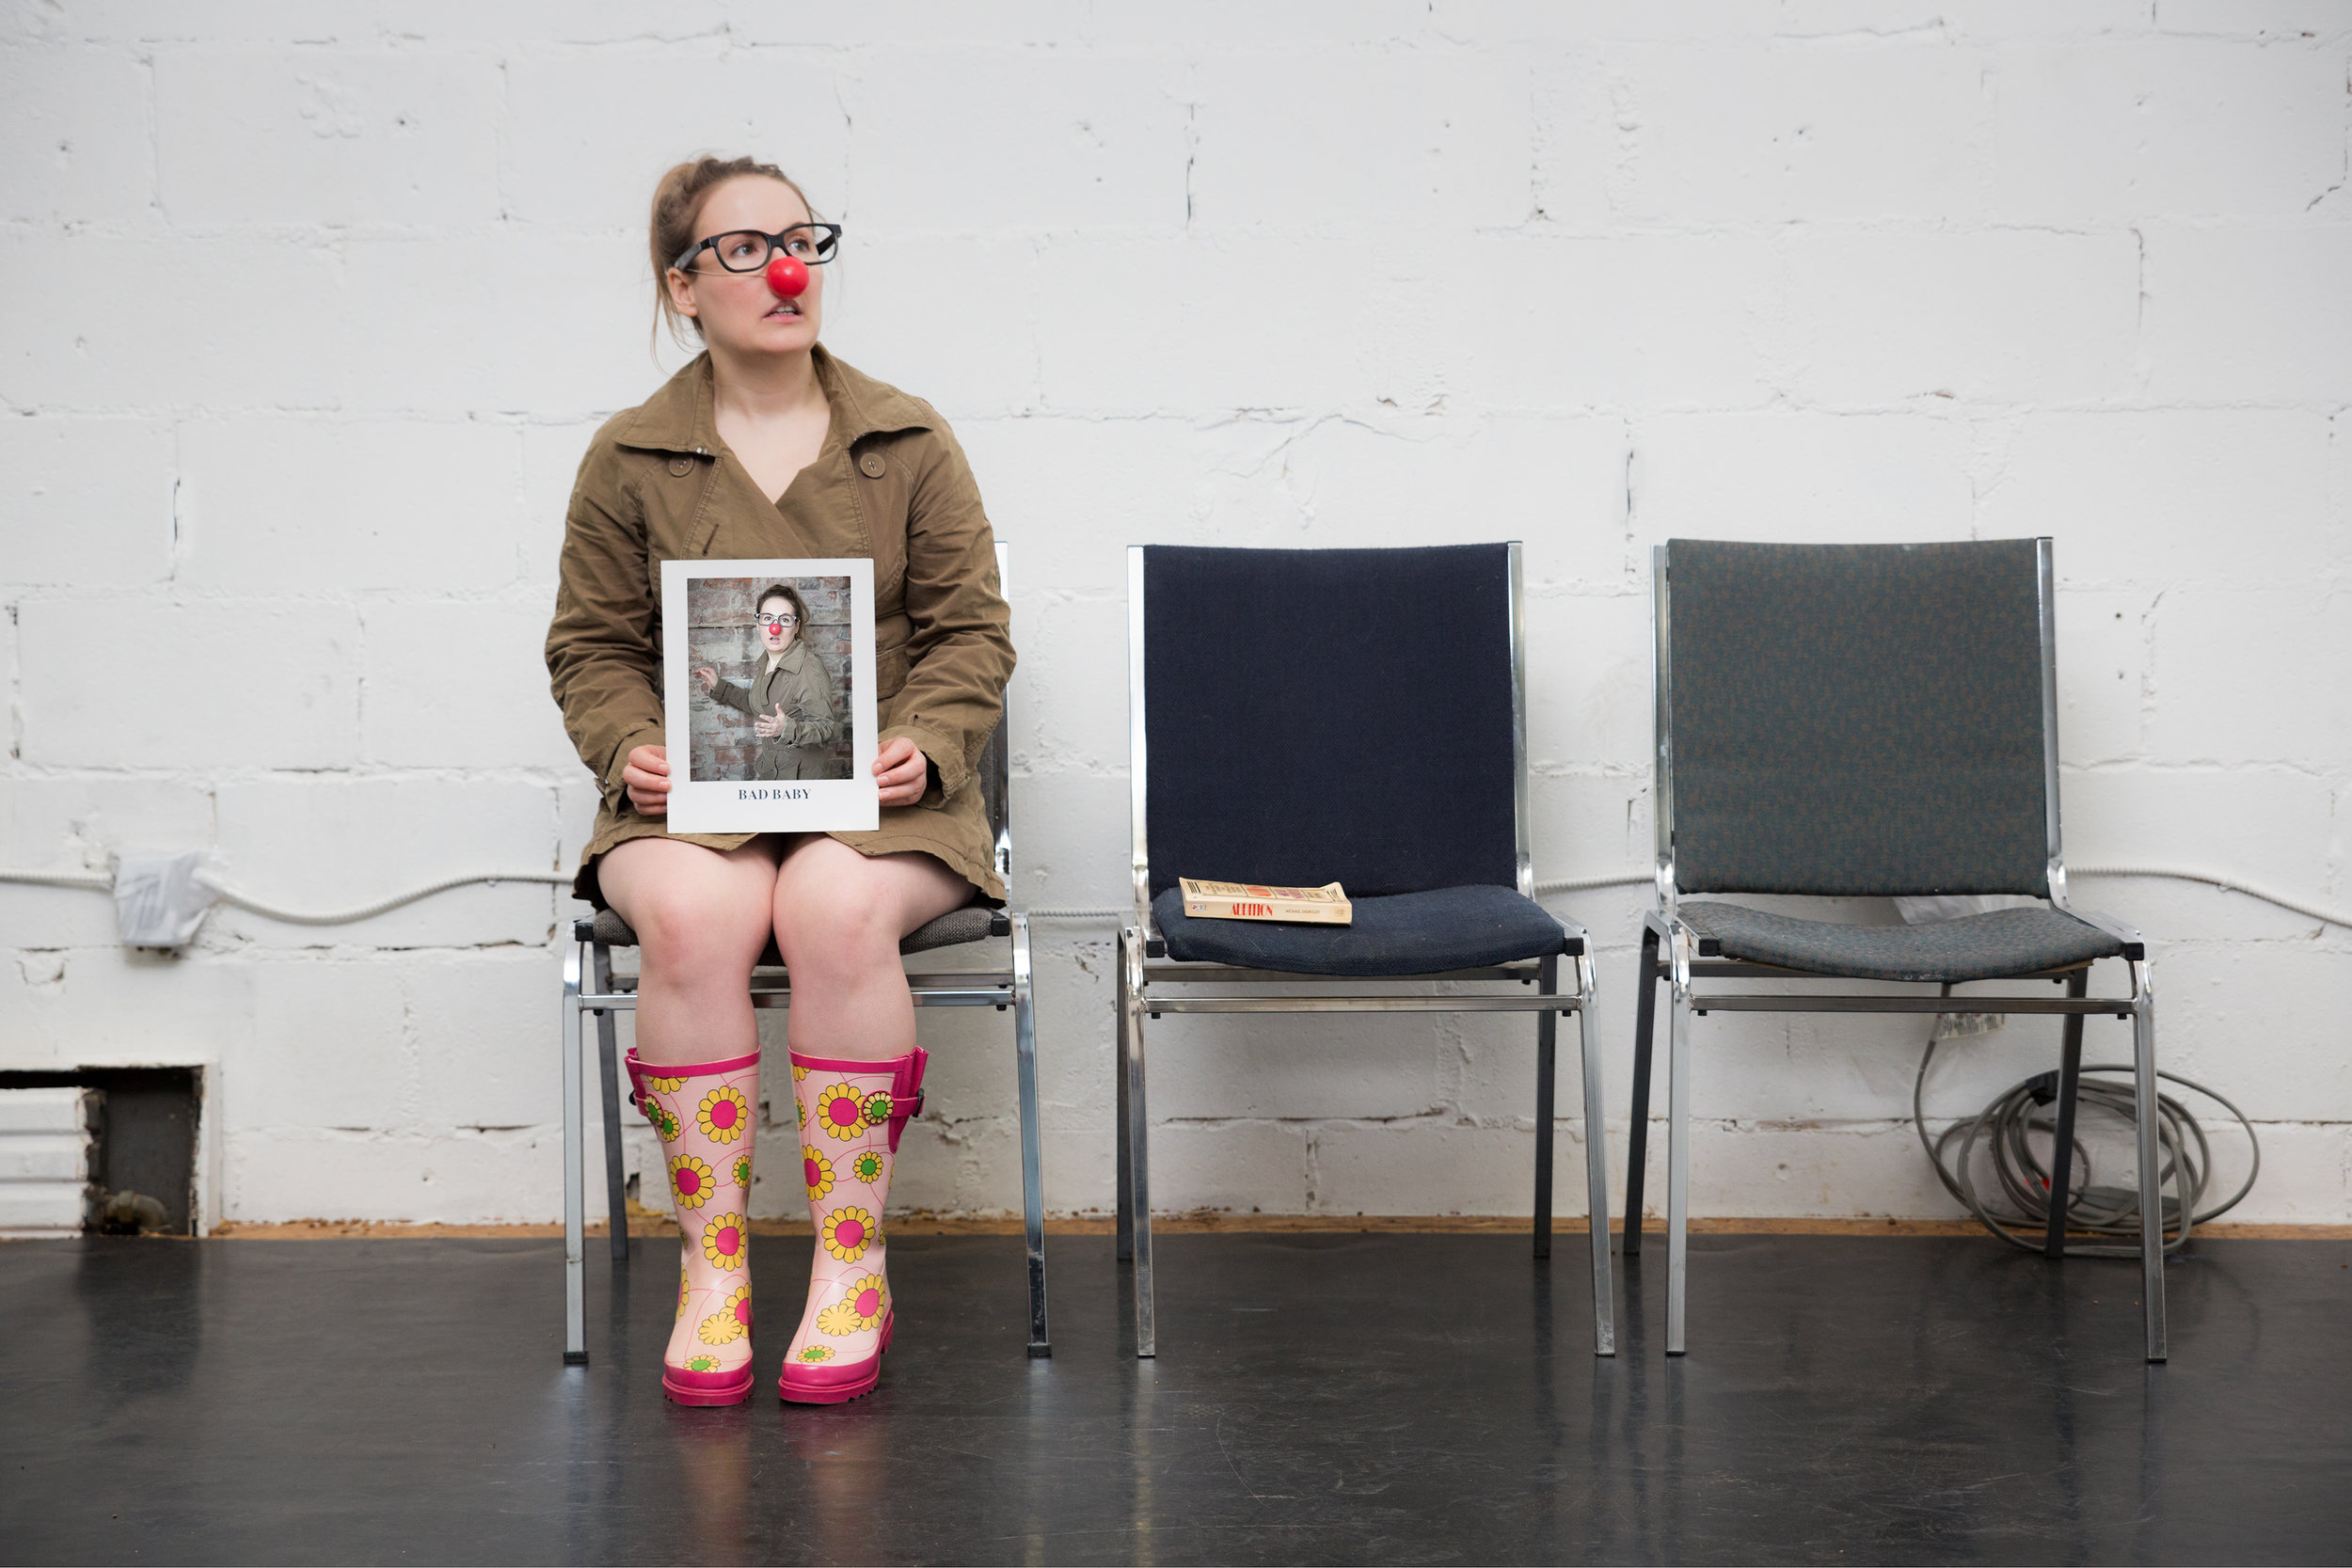 Janelle Hanna as Bad Baby. Promotional photography by Scott Murdoch - Five by Five Photography.